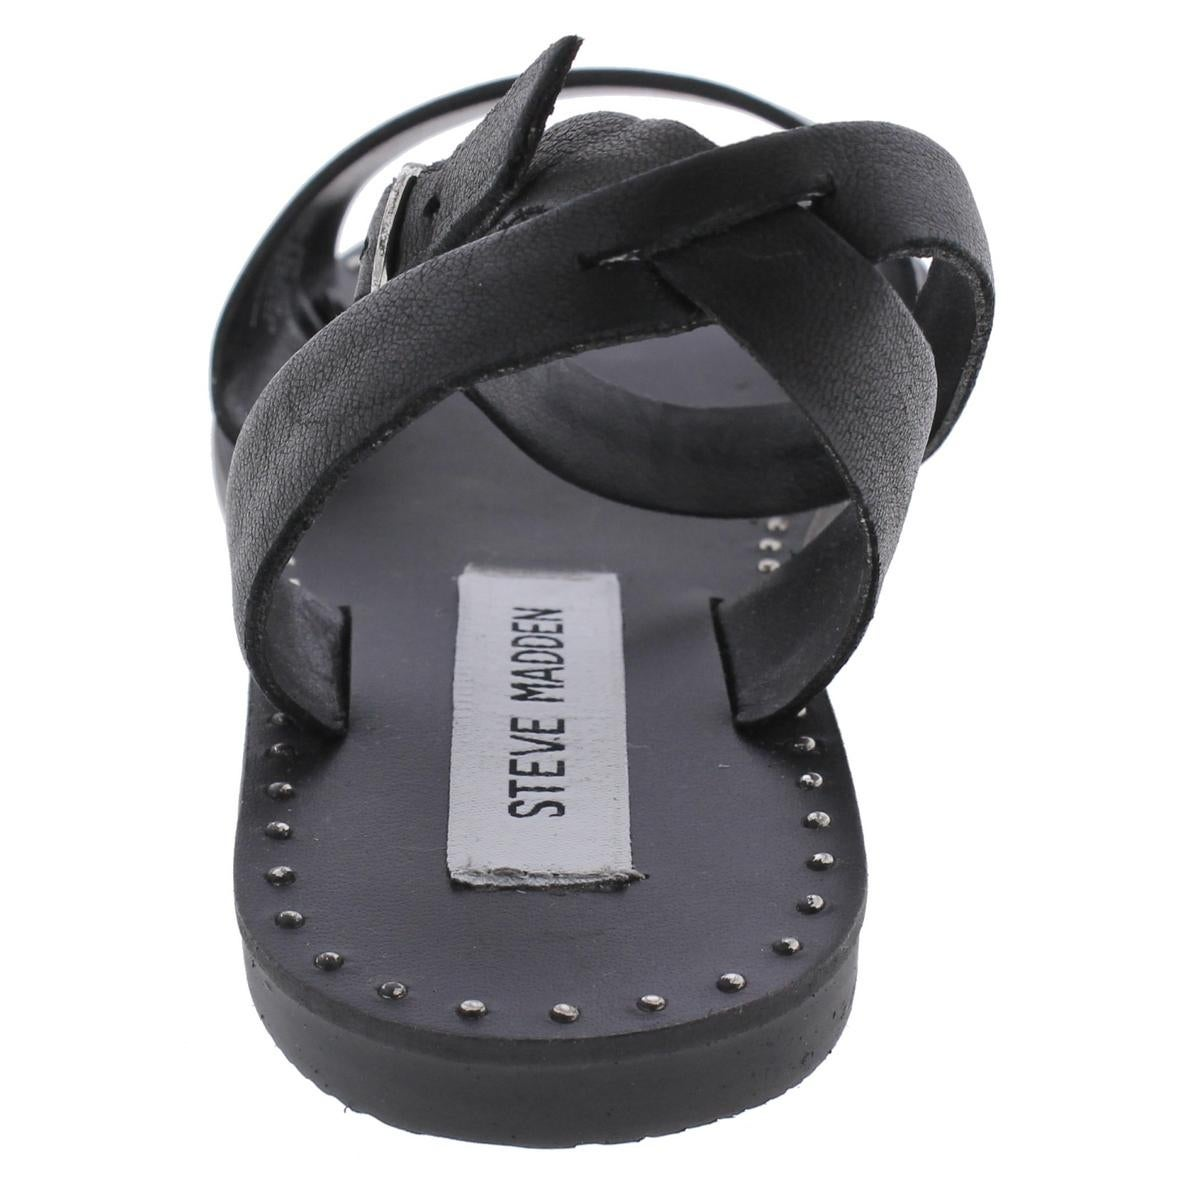 5adb7a168a78d Shop Steve Madden Womens Danny Flat Sandals Open Toe Studded - Free  Shipping On Orders Over $45 - Overstock - 20602921